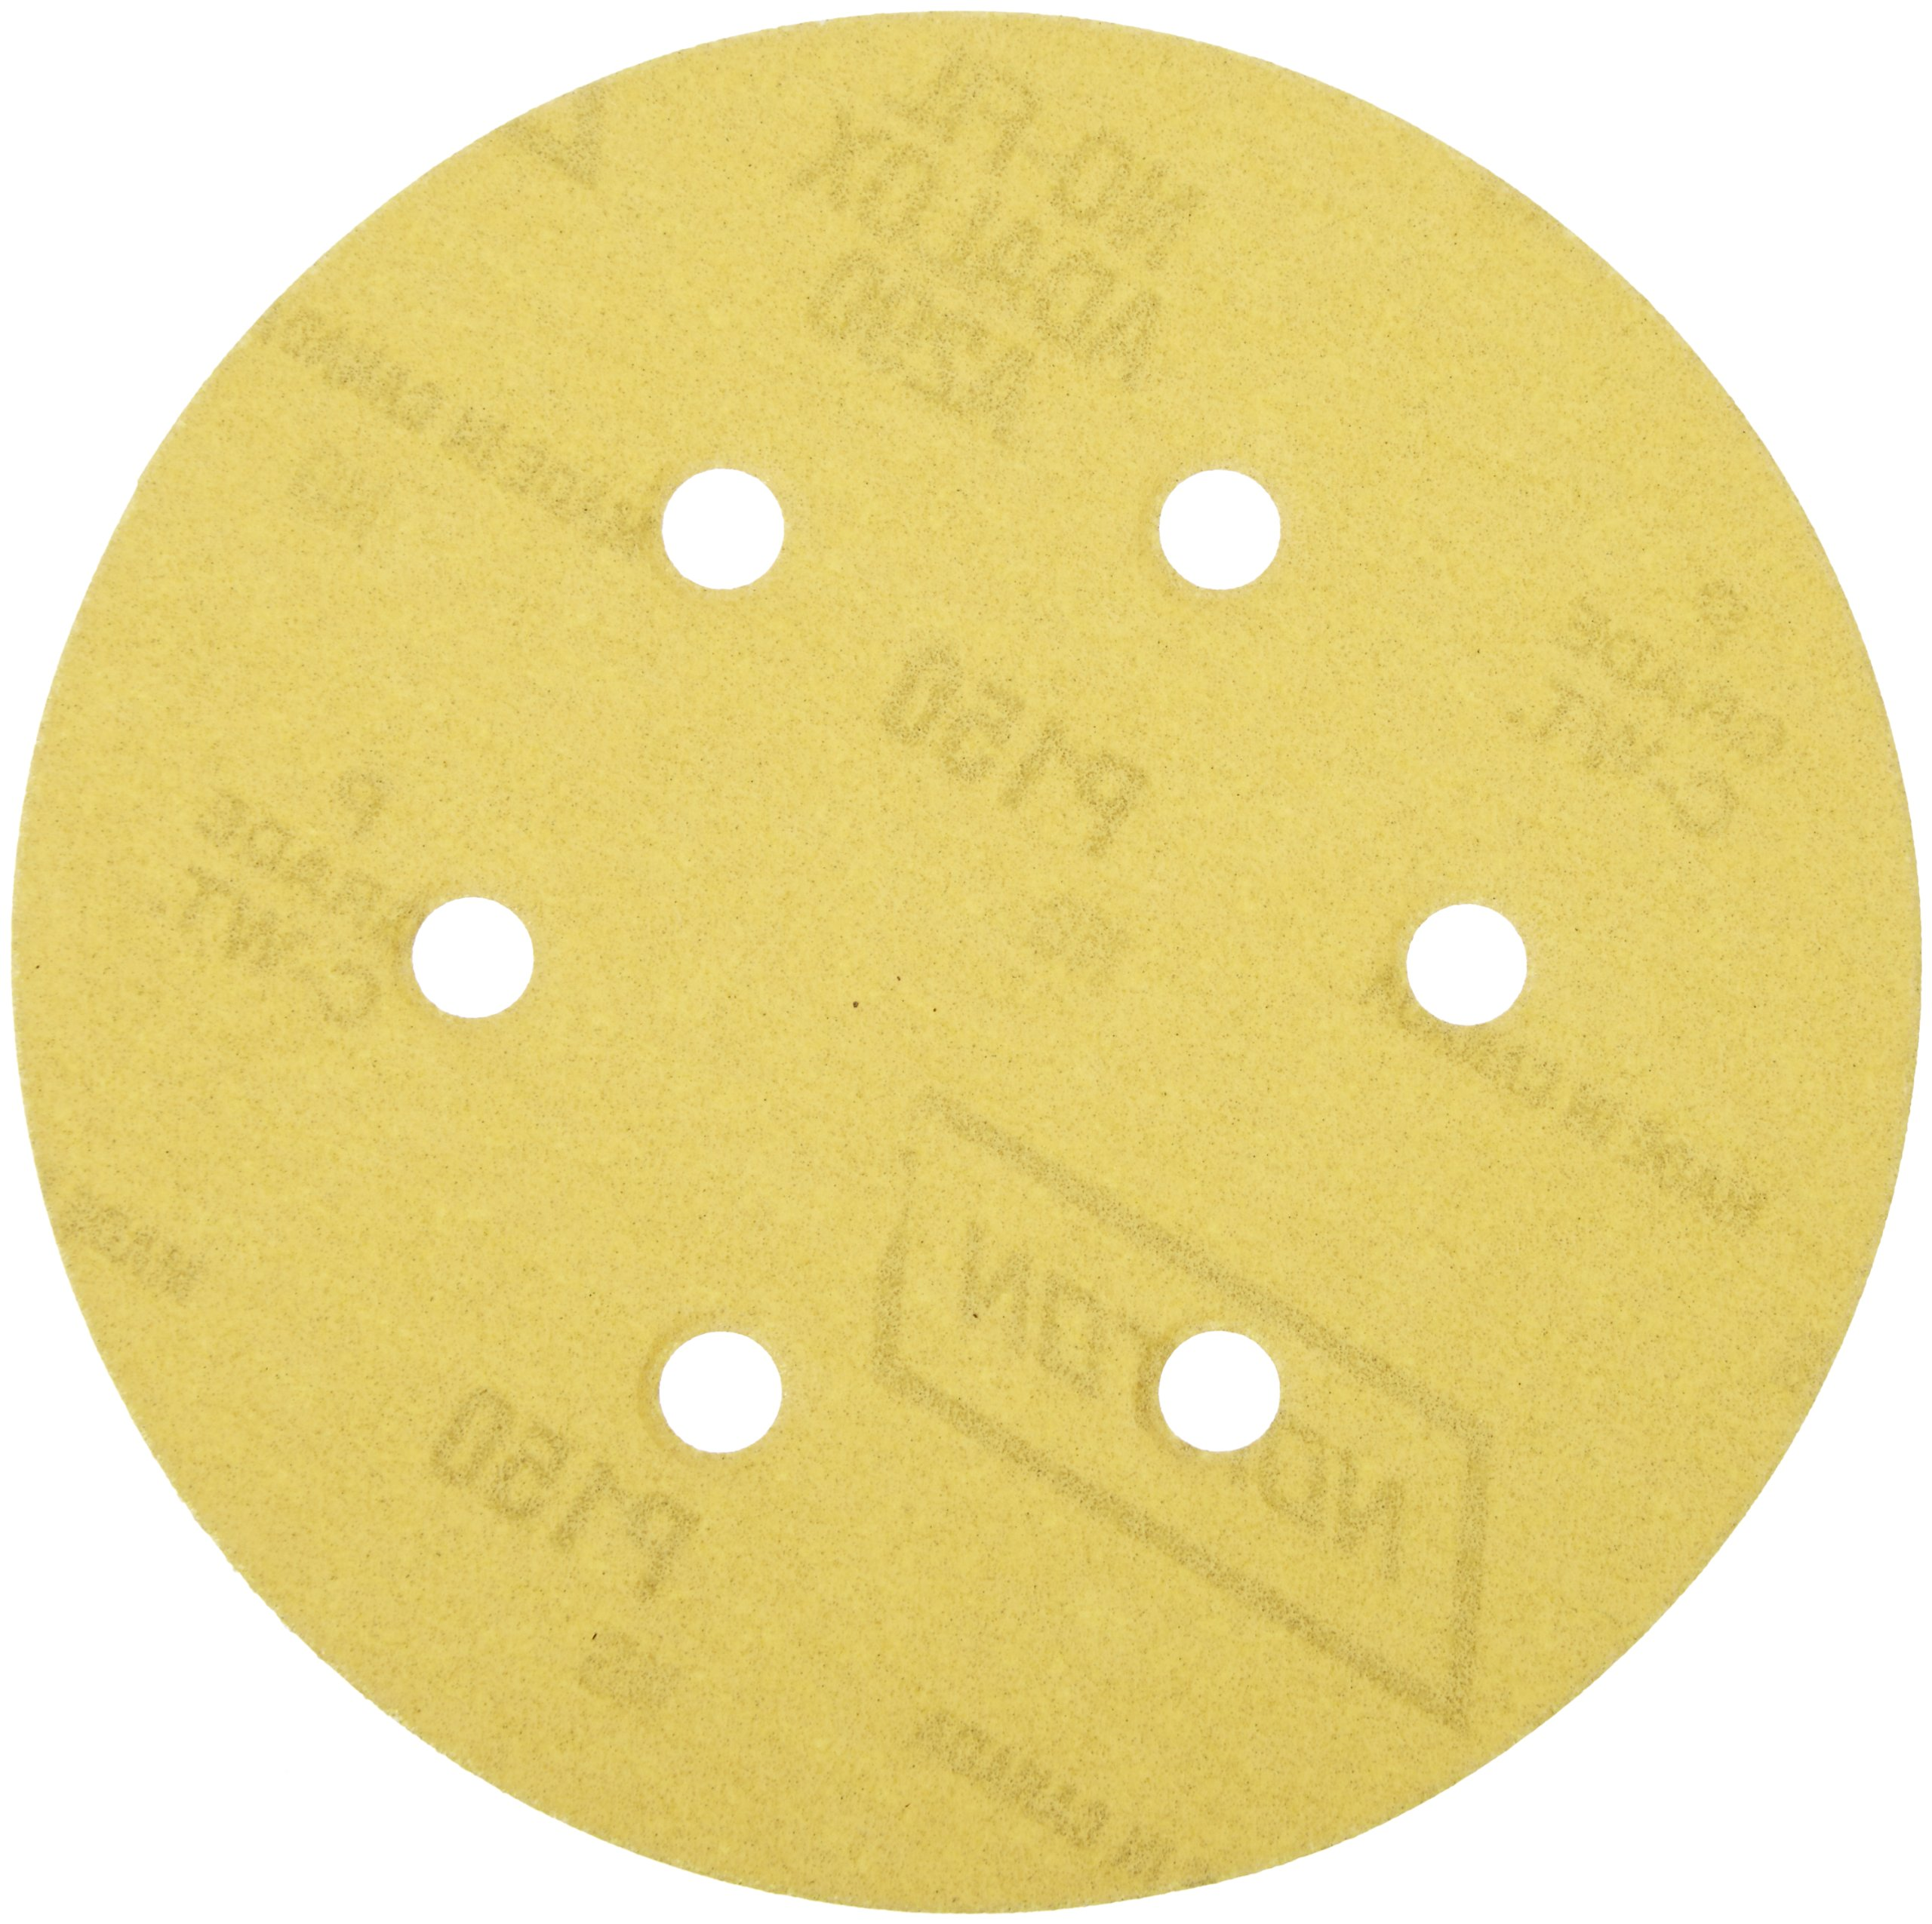 Norton 07660701634 Hook and Sand Universal Vac Hole Abrasive Disc with Hook and Loop Attachment, Paper Backing, Aluminum Oxide, 6 Holes, 6'' Diameter, Grit P150 Fine (Pack of 25)